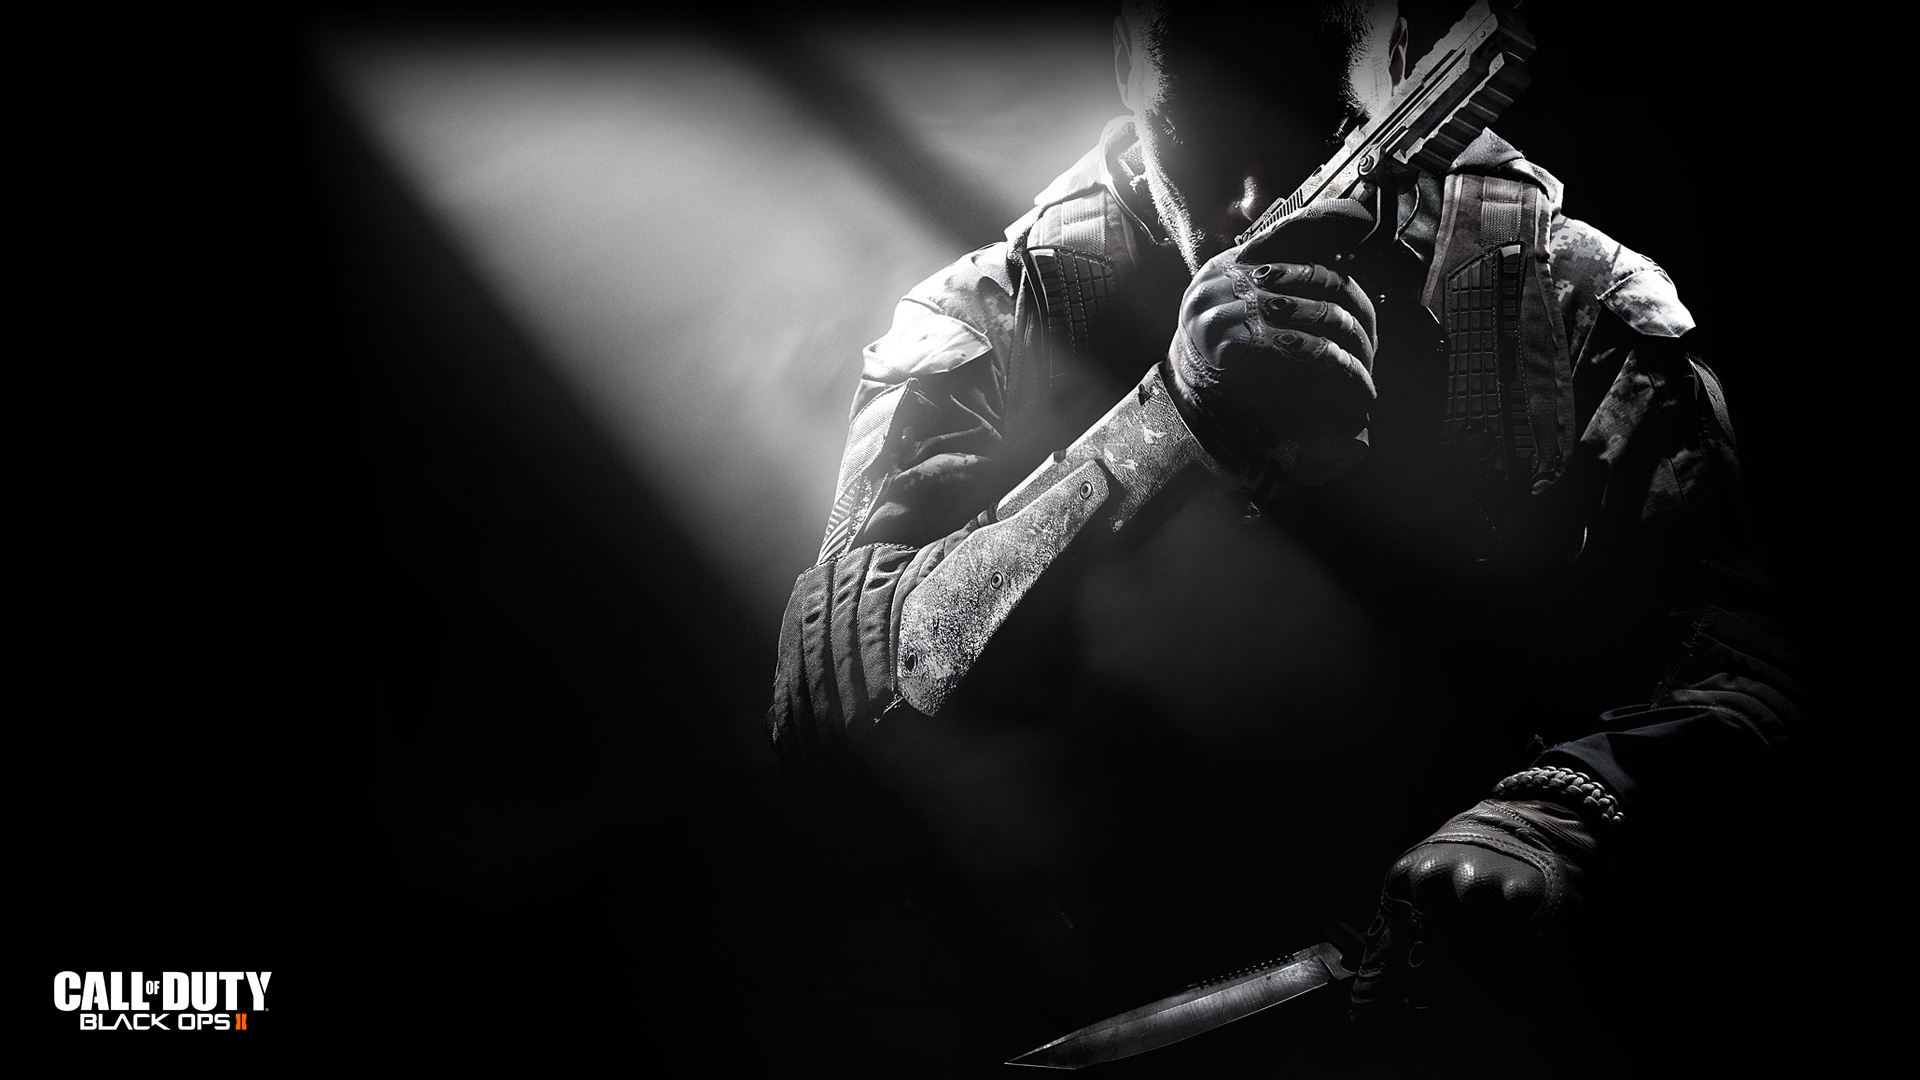 Free Call of Duty: Black Ops 2 Wallpaper in 1920x1080